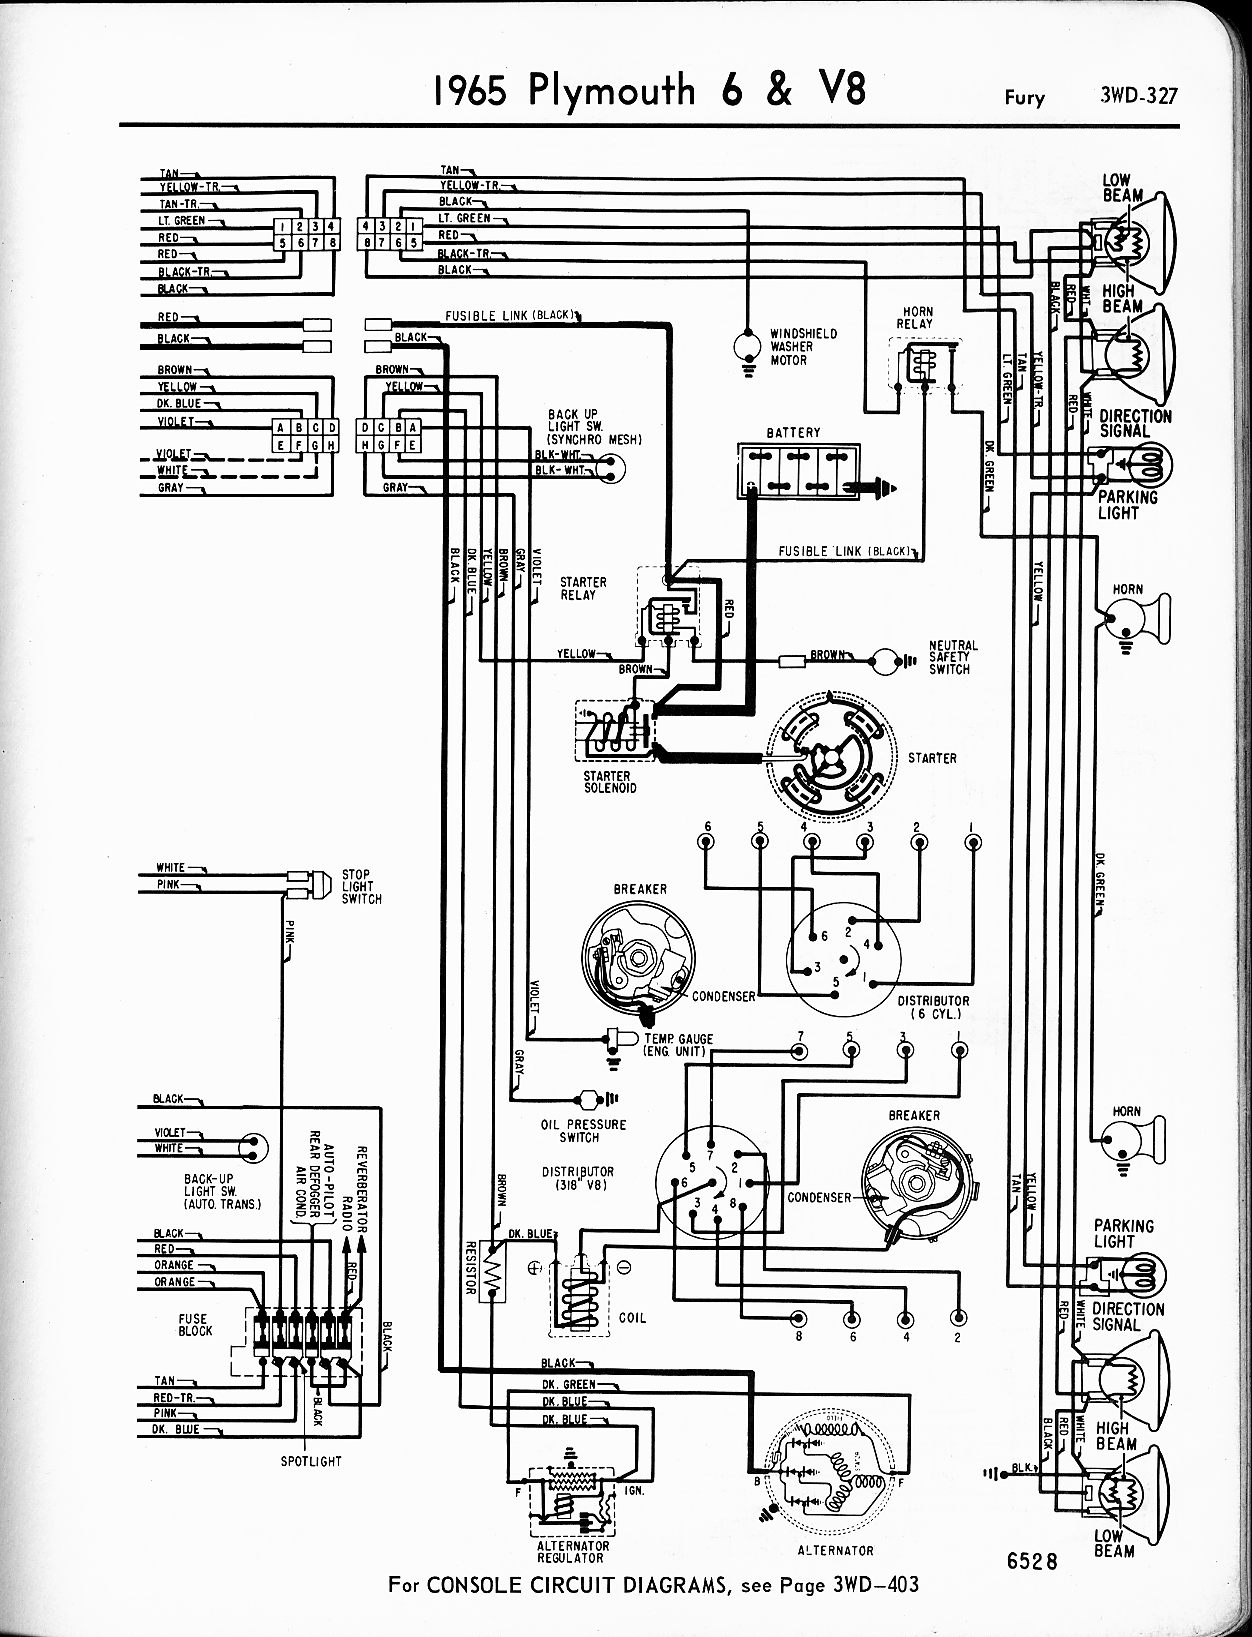 1980 Plymouth Volare Engine Harness Diagram Wiring Schematic 1977 Chevy V8 Ignition Diagrams Sitewiring Dodge